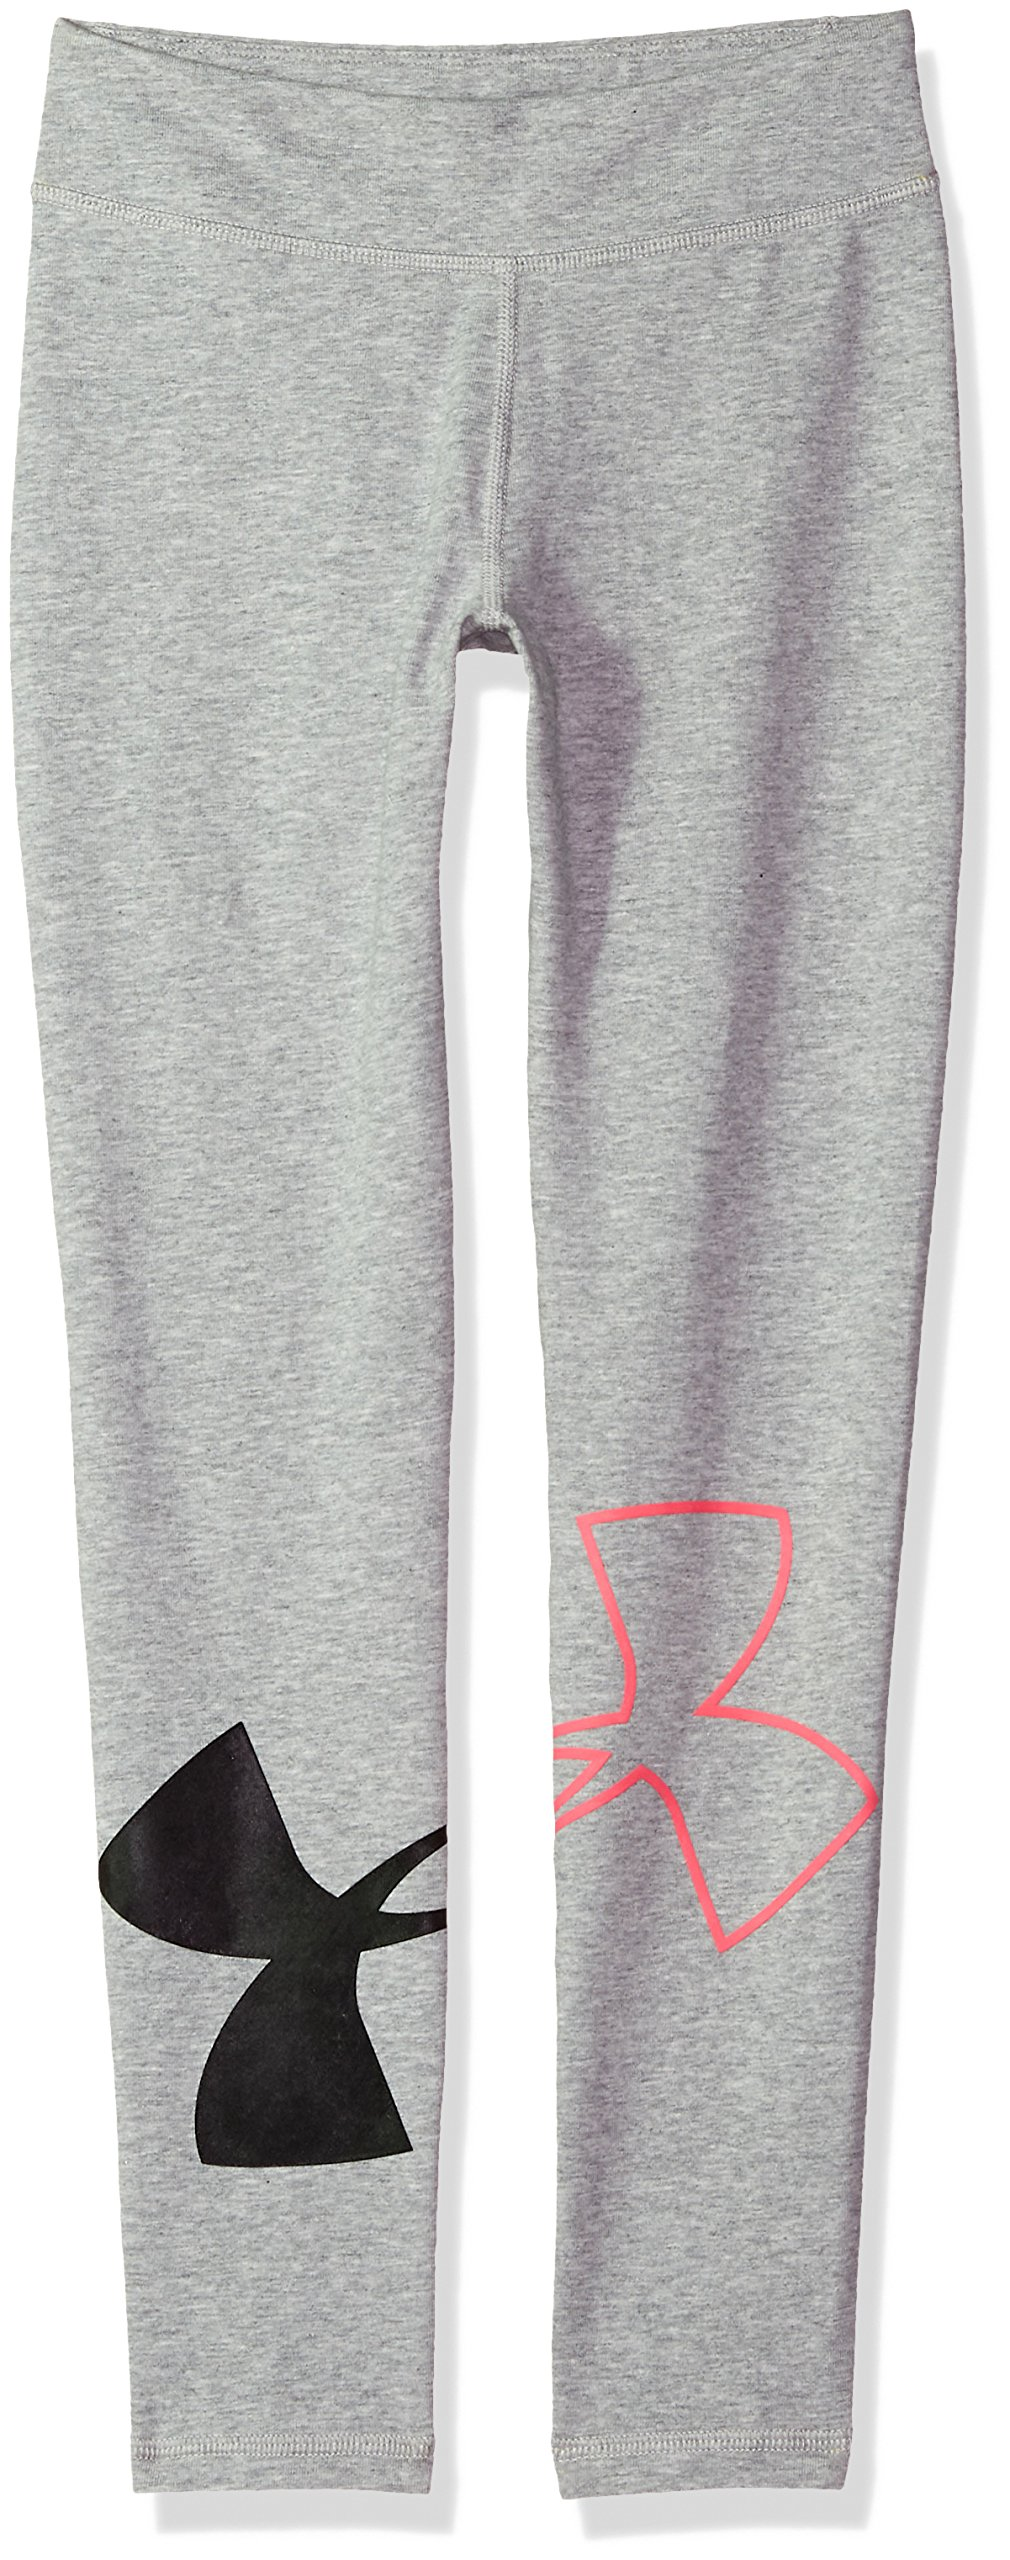 Under Armour Girls' Favorite Knit Leggings, True Gray Heather (025)/Penta Pink, Youth Large by Under Armour (Image #1)